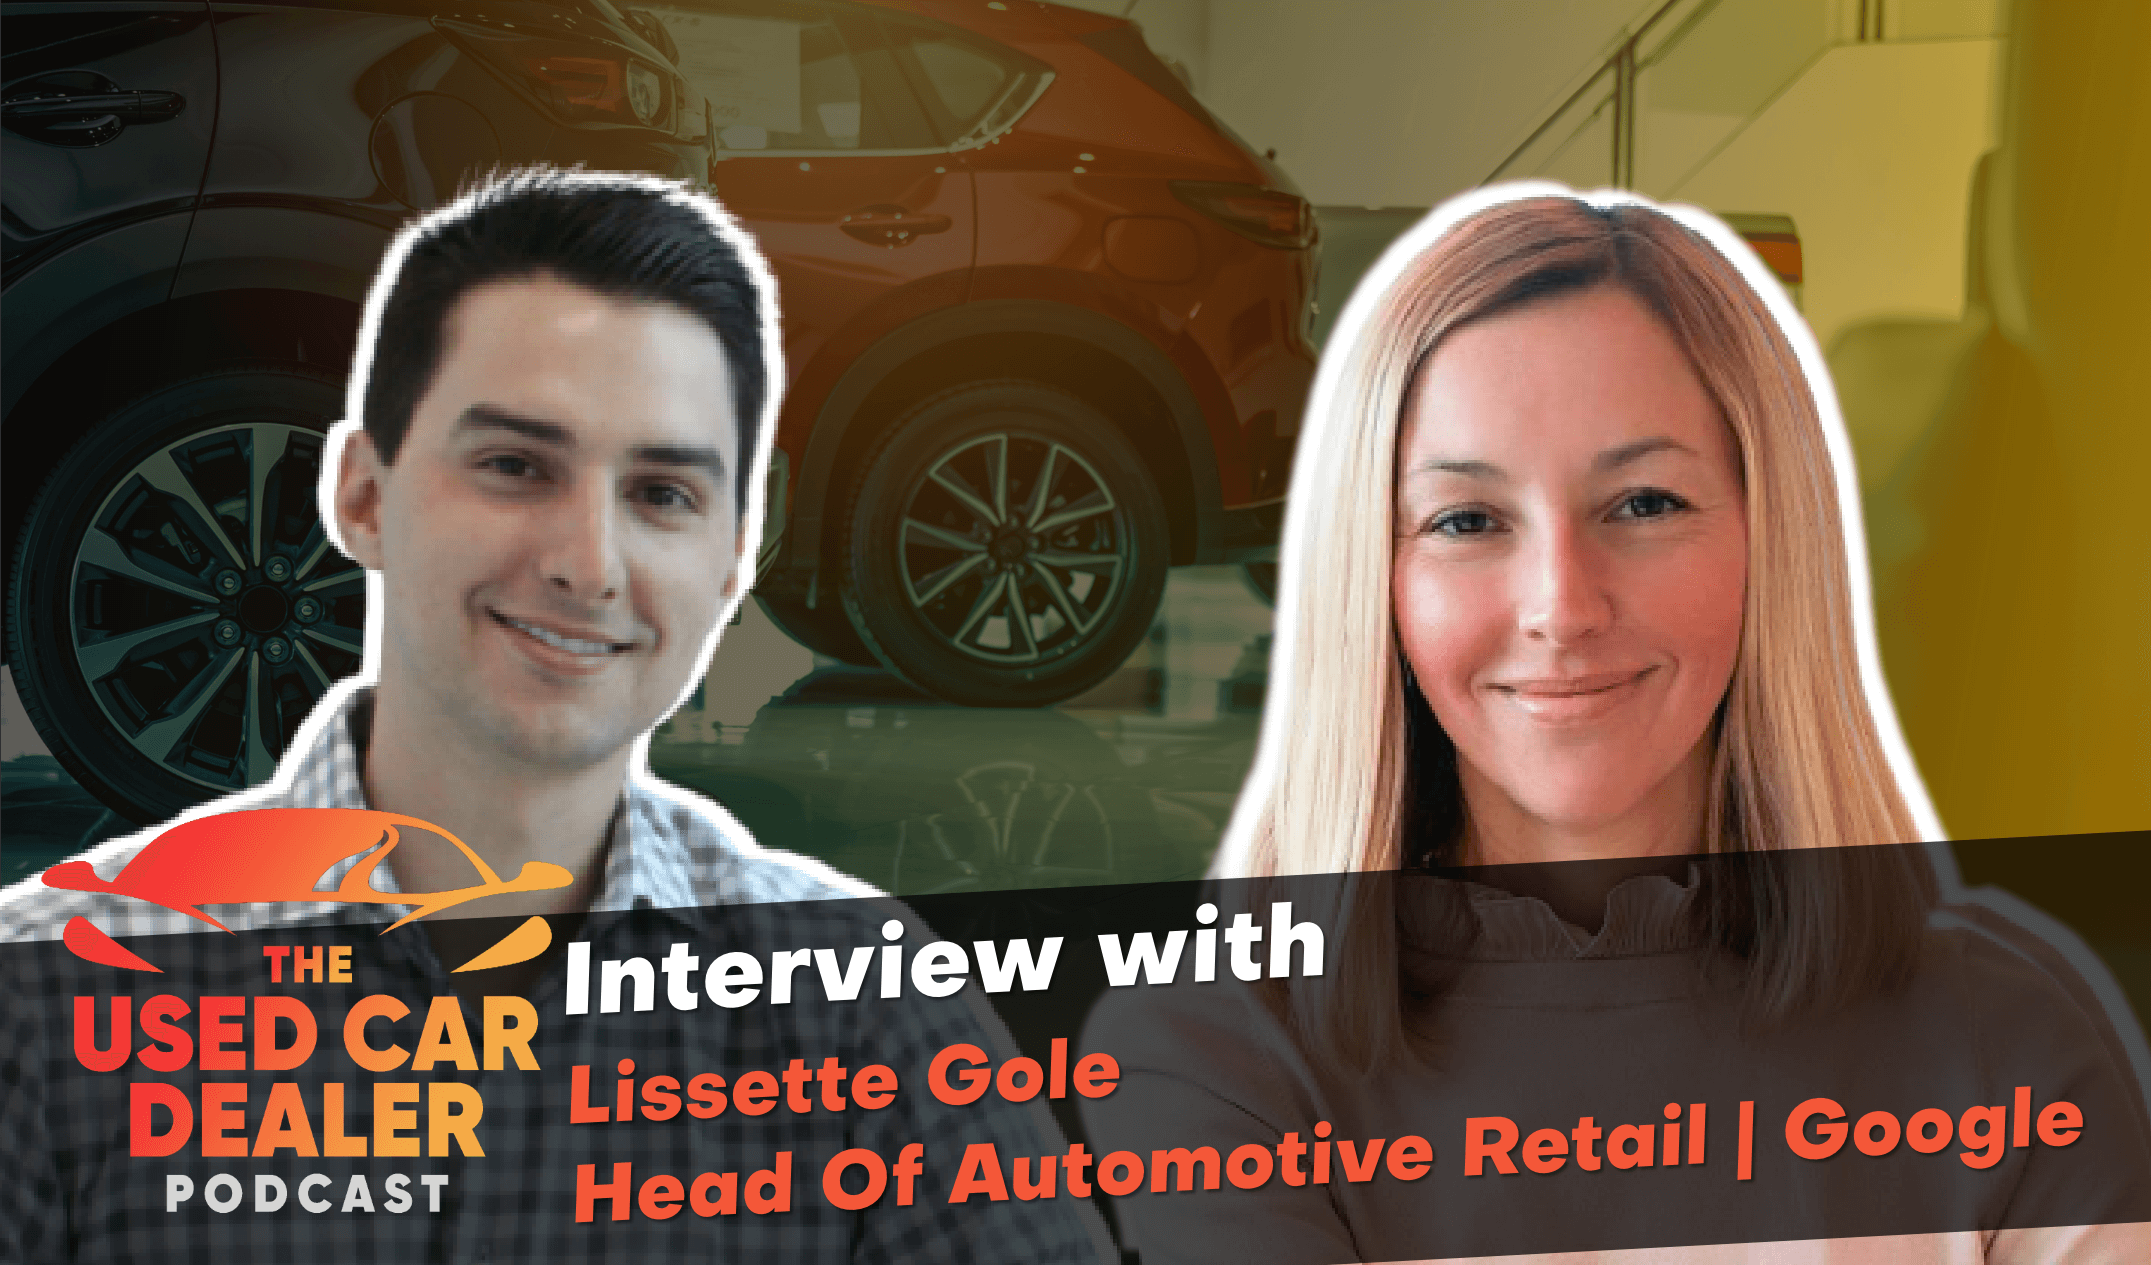 Interview with Lissette Gole Head of Automotive Retail at Google on Used Car Sales